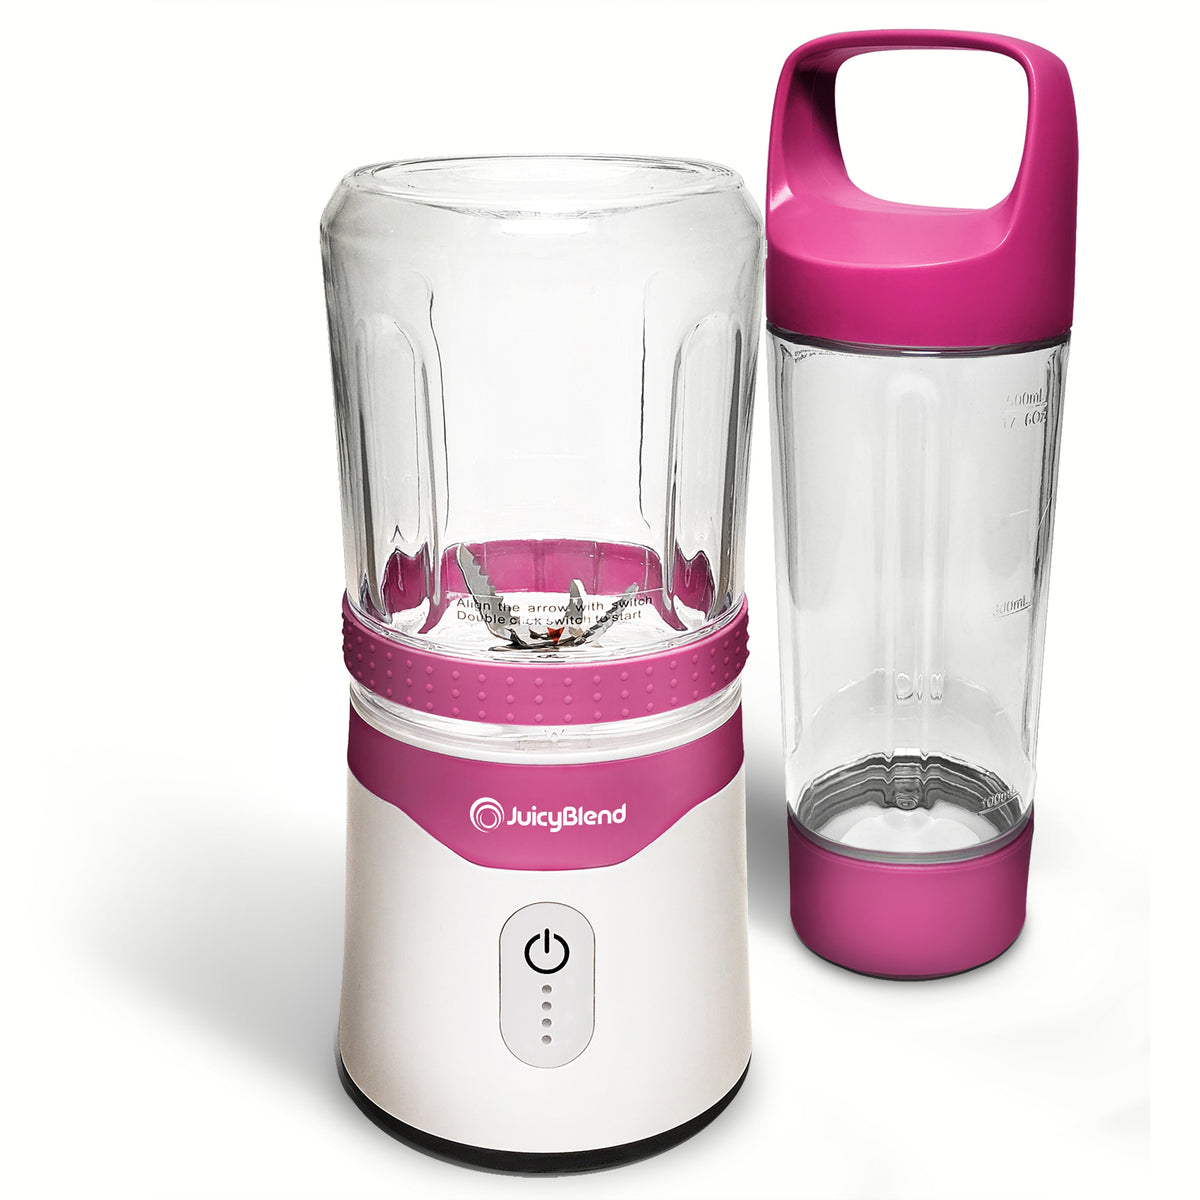 JuicyBlend pink and white portable blender with 500ML clear plastic jar with pink lid and 300ML clear plastic jar with blender motor base.